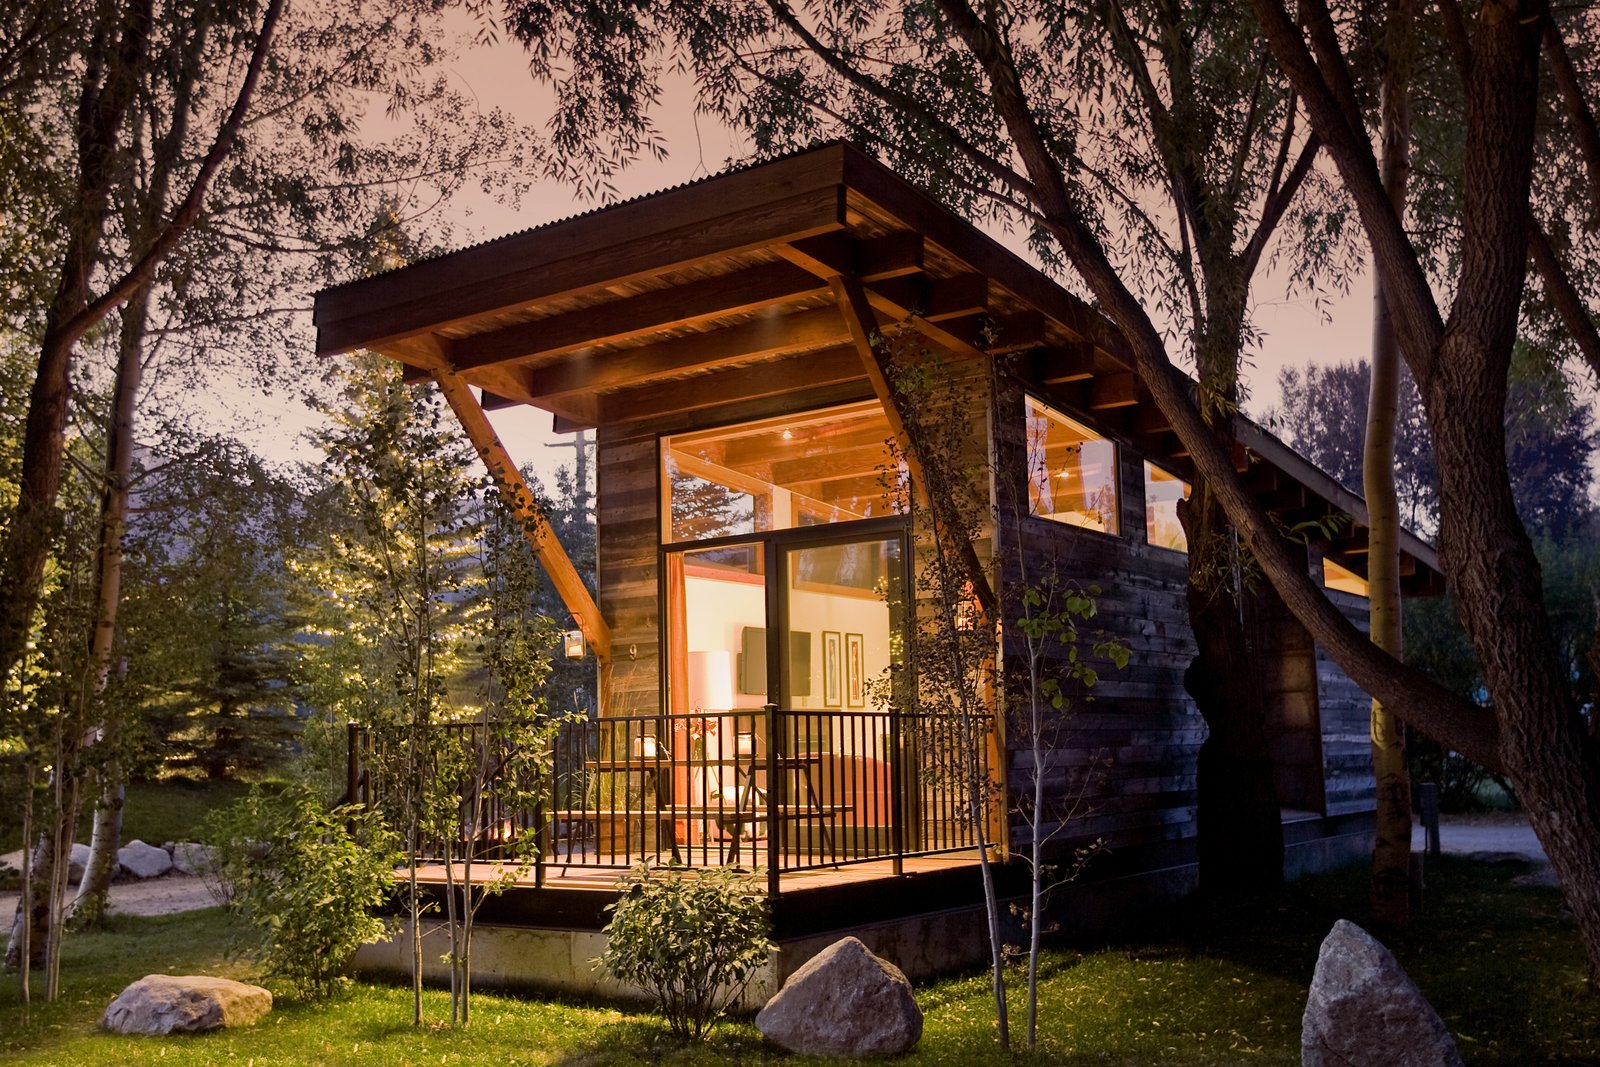 The Wedge tiny home model  Photo 3 of 10 in These Customizable Modular Homes Can Make Your Tiny House Dreams Come True